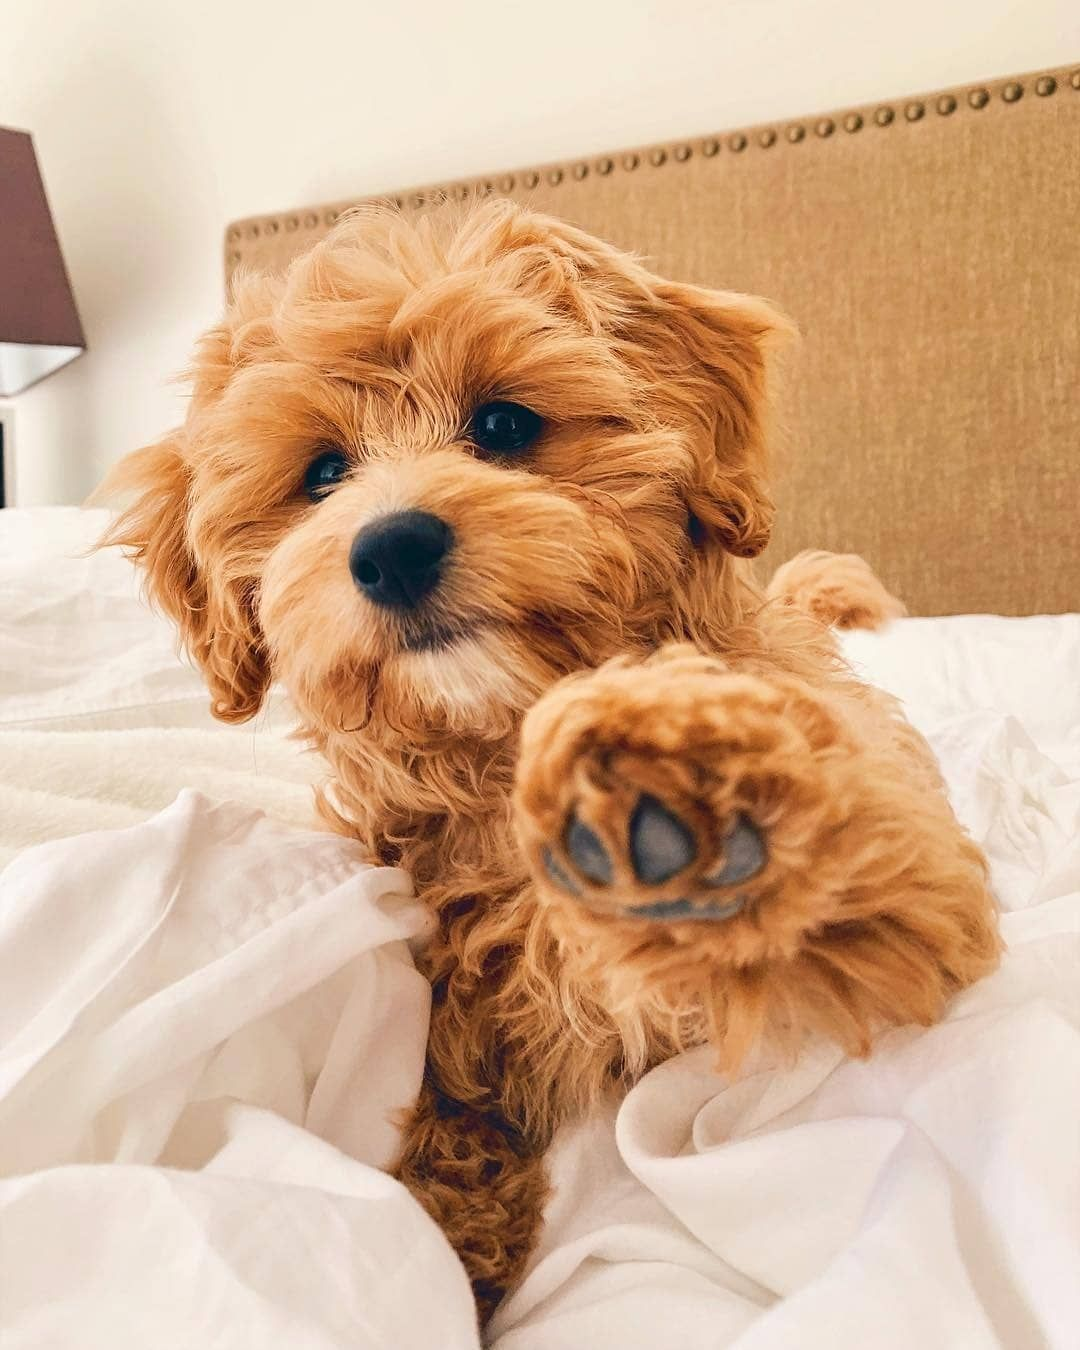 Cavapoo Puppies Information, Characteristics, Facts